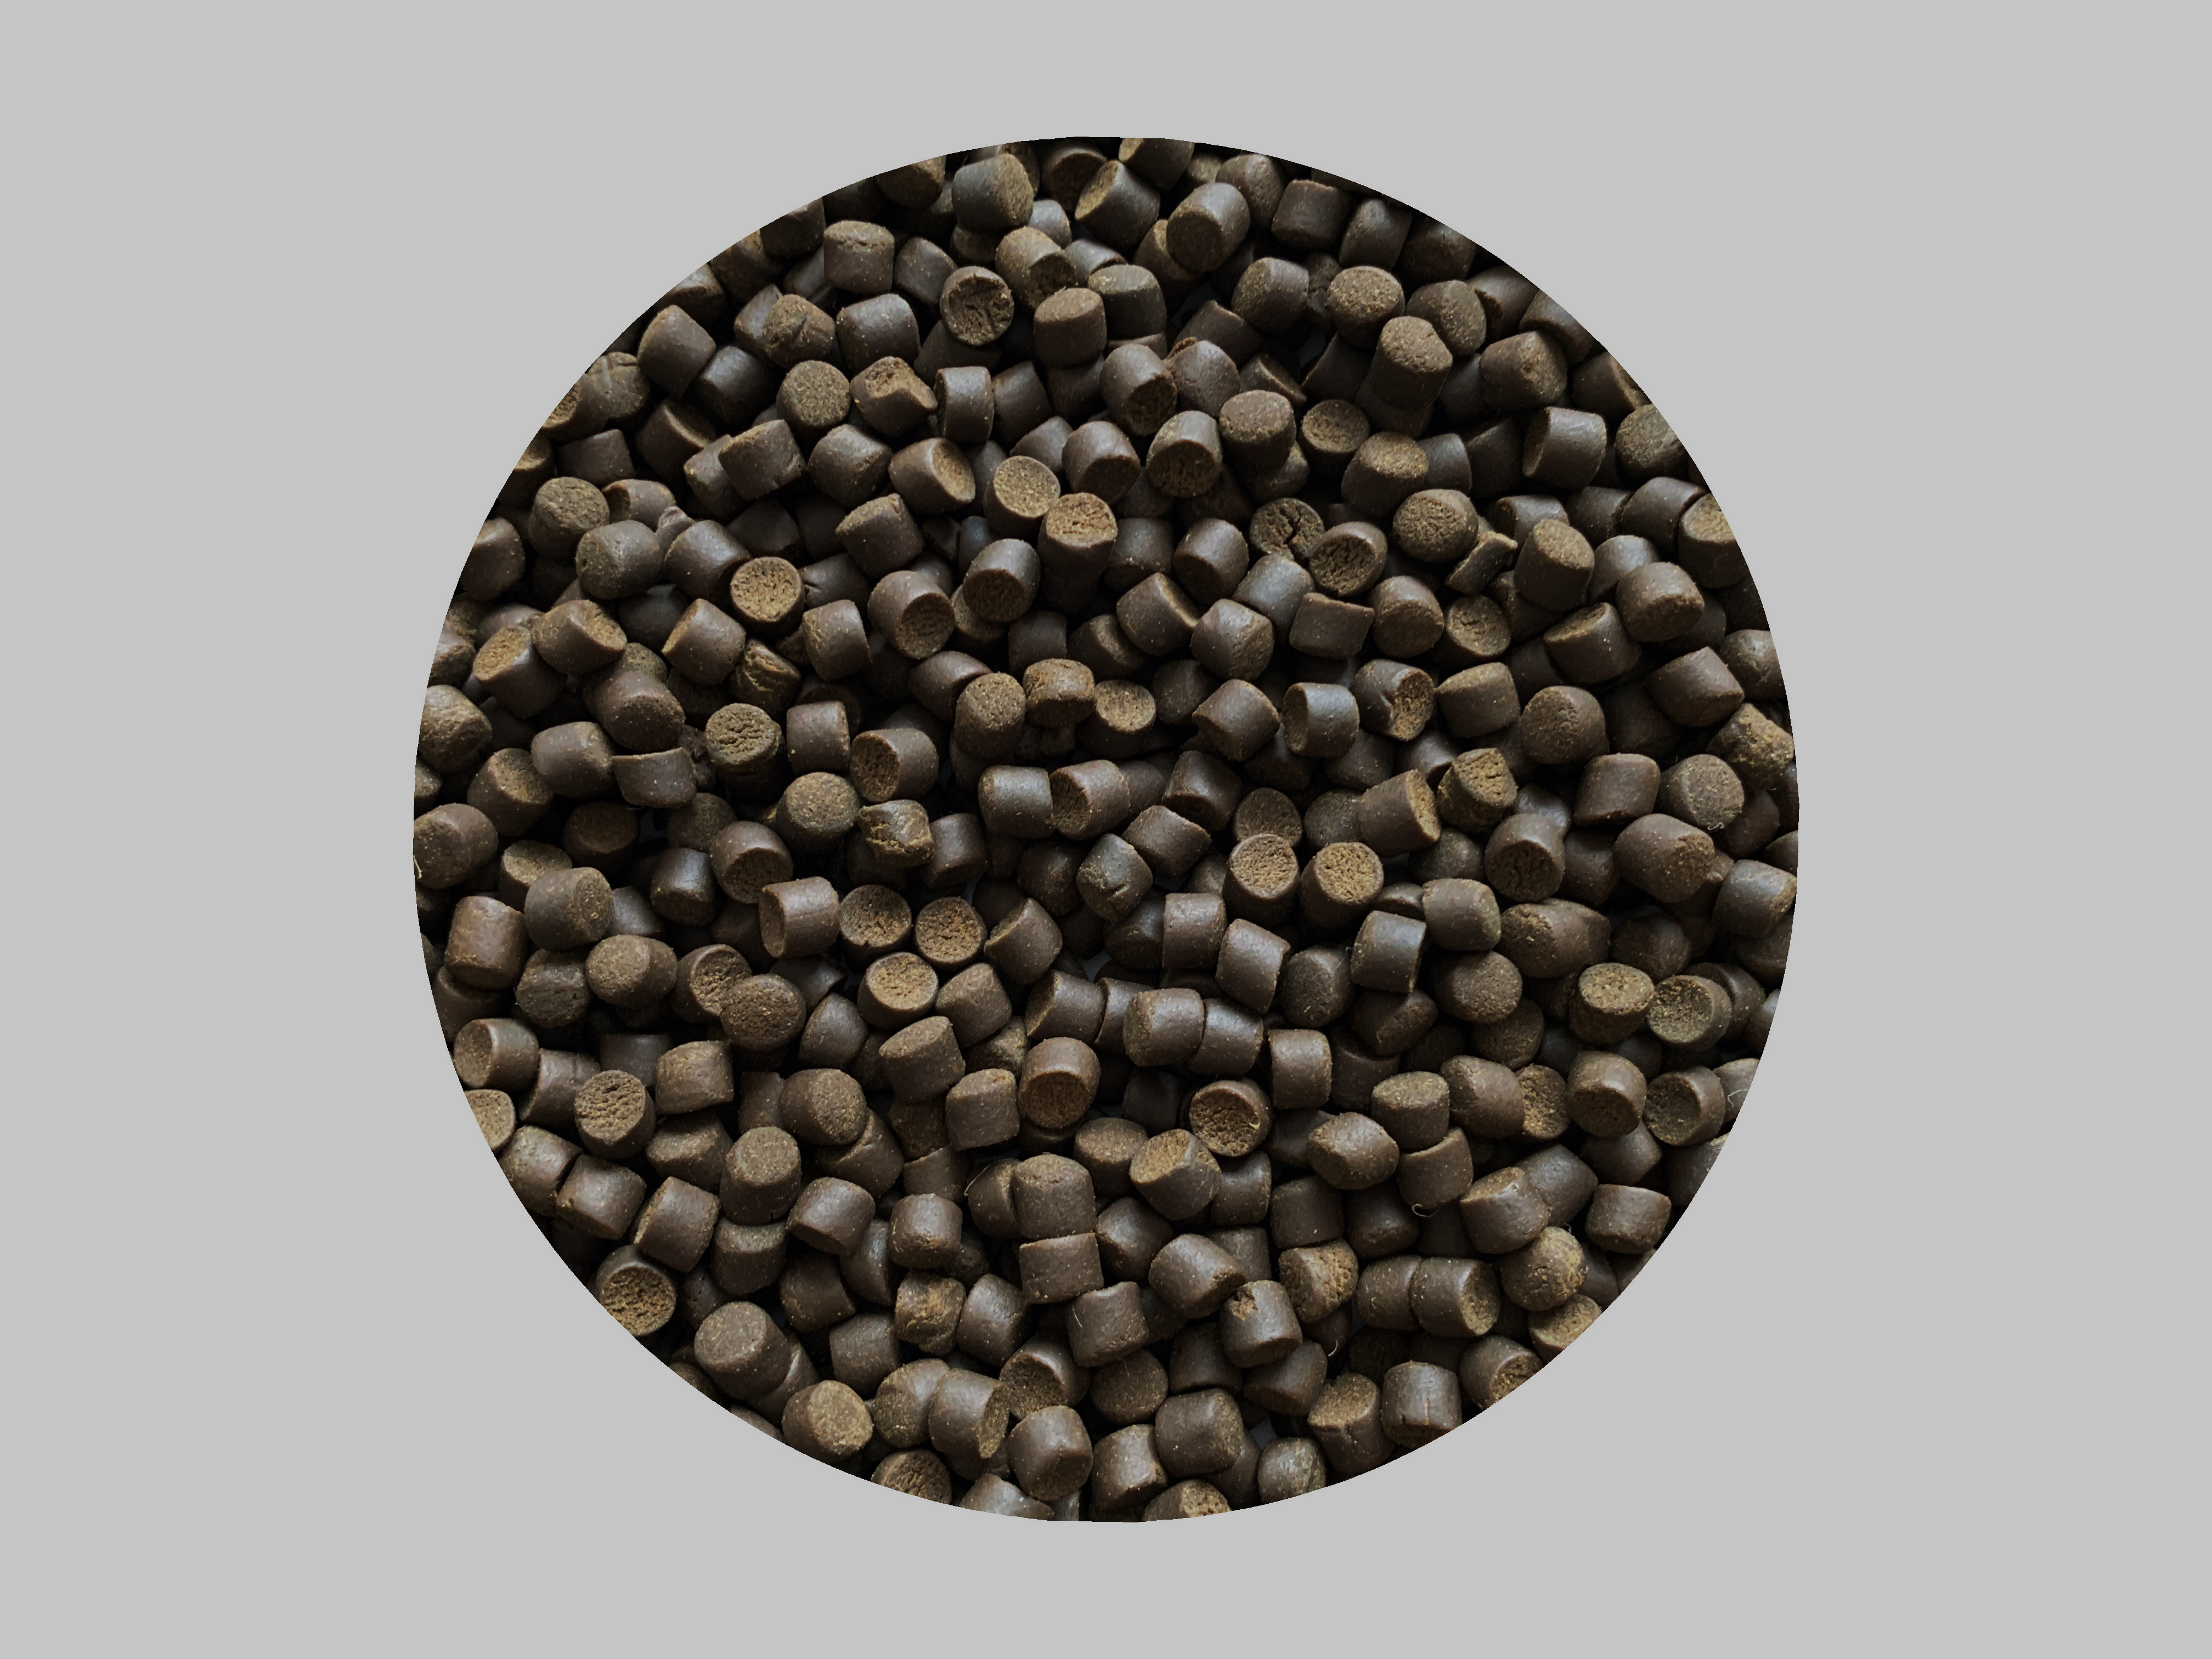 China  factory supply  complete nutrient  different size floating pellet extruded formula fish feed  for yellow croaker